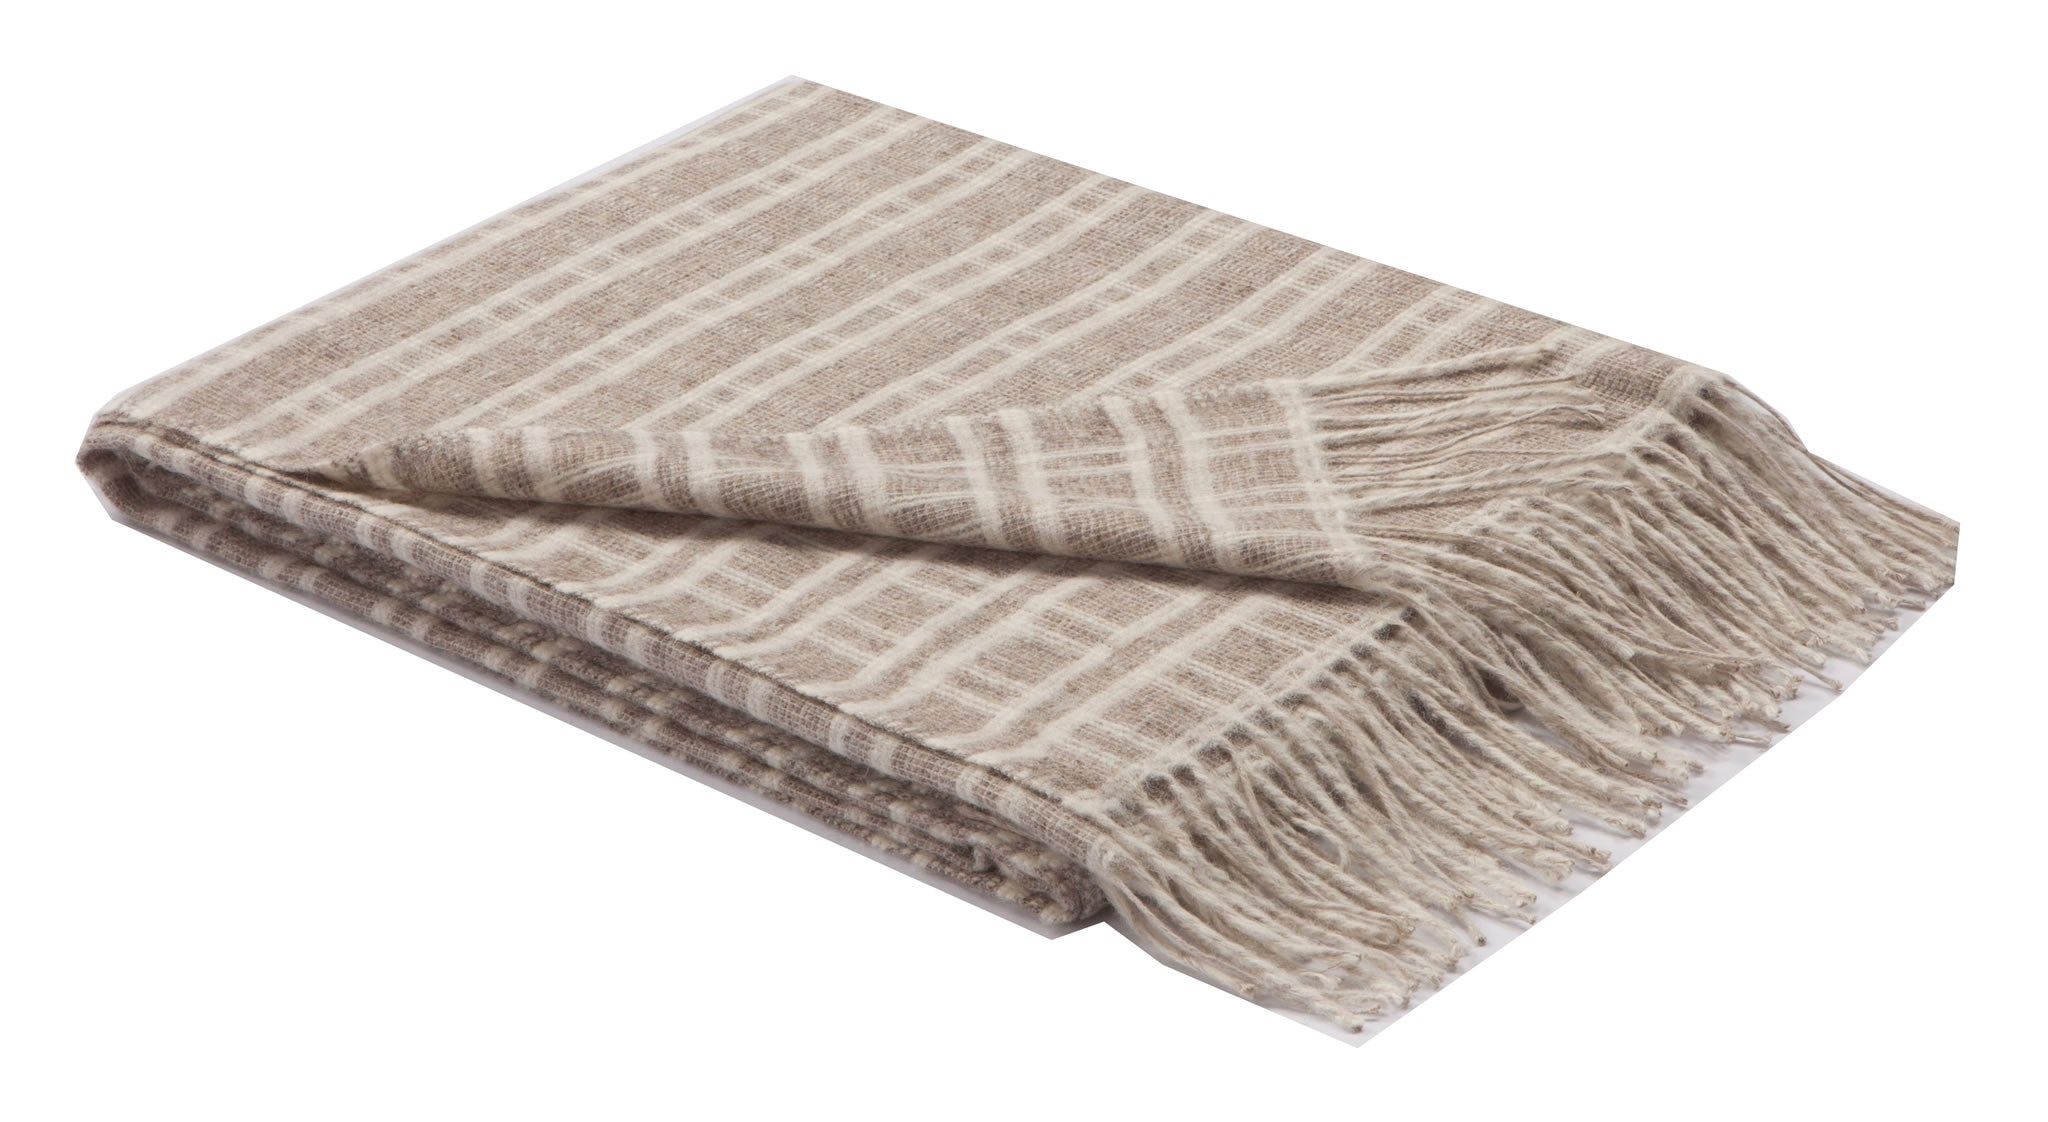 Woven Wool Throw - Driftwood & White